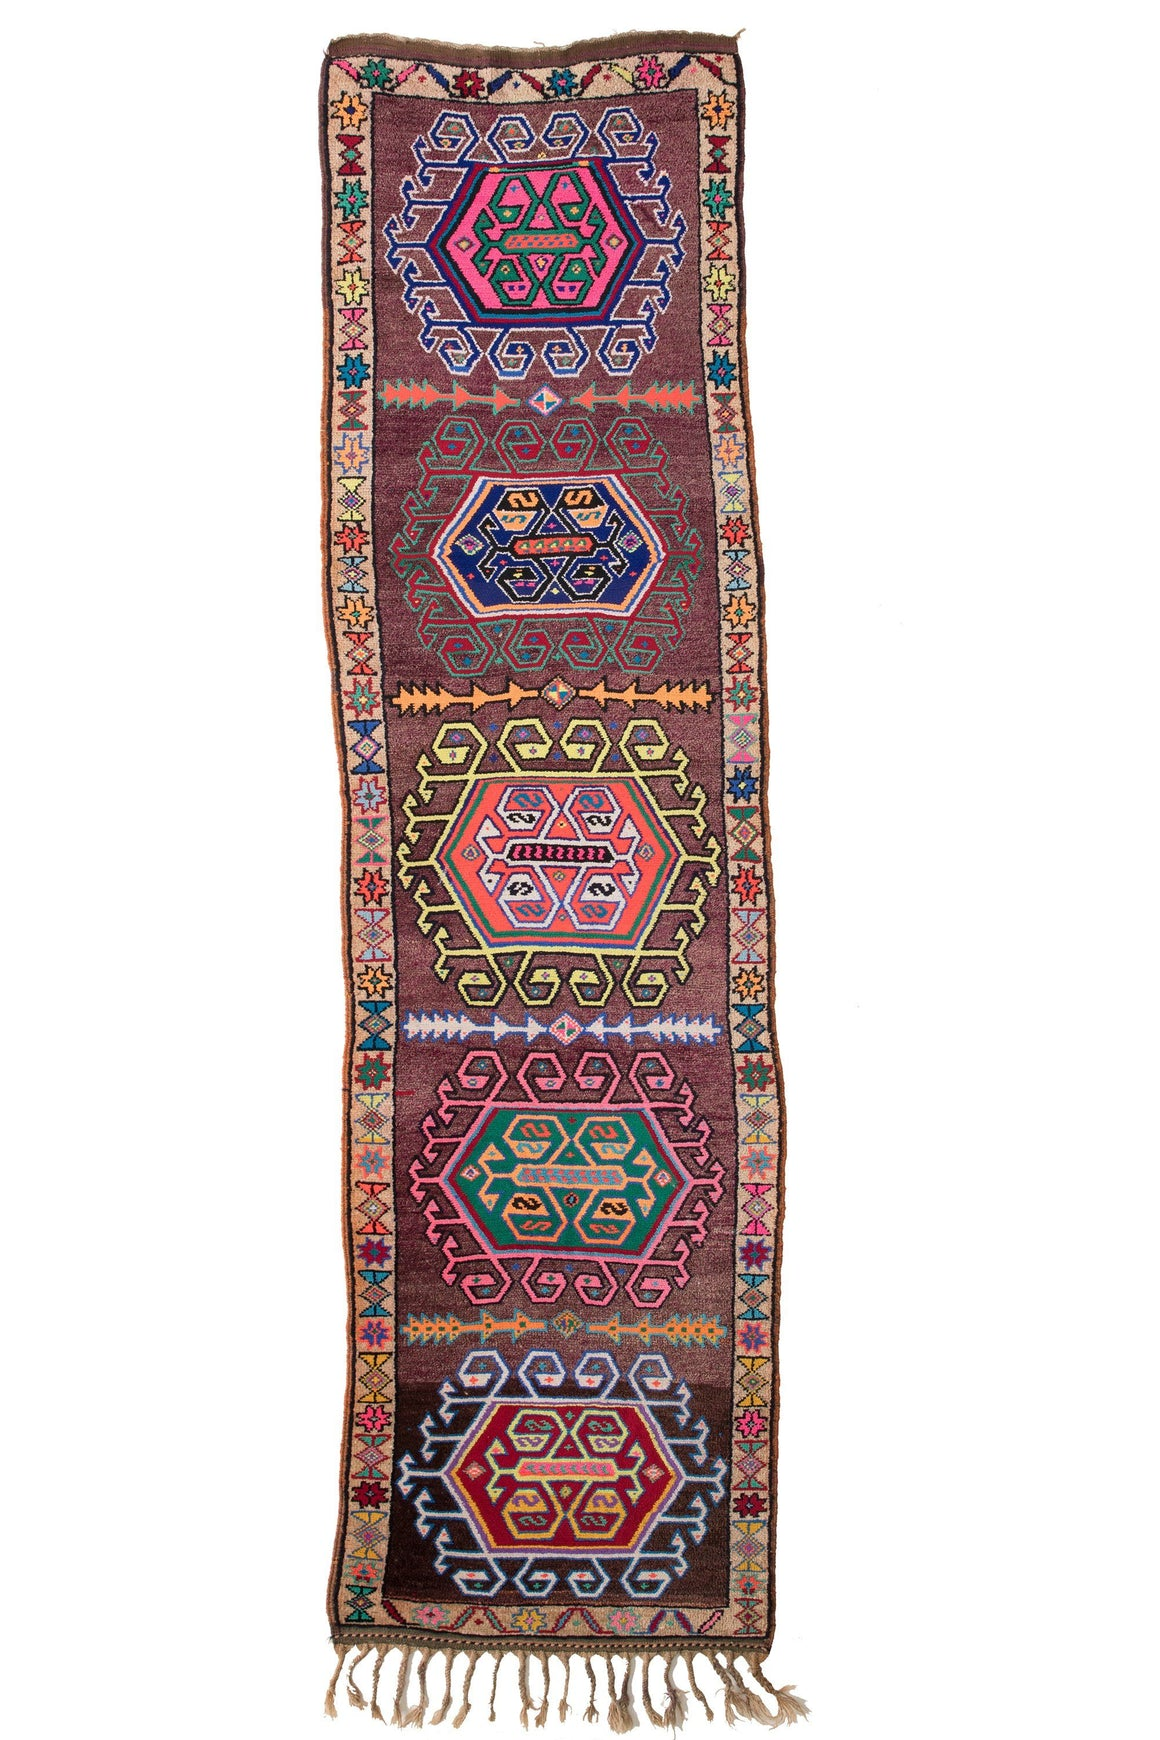 'City Lights' Tribal Runner Rug - Canary Lane - Curated Textiles